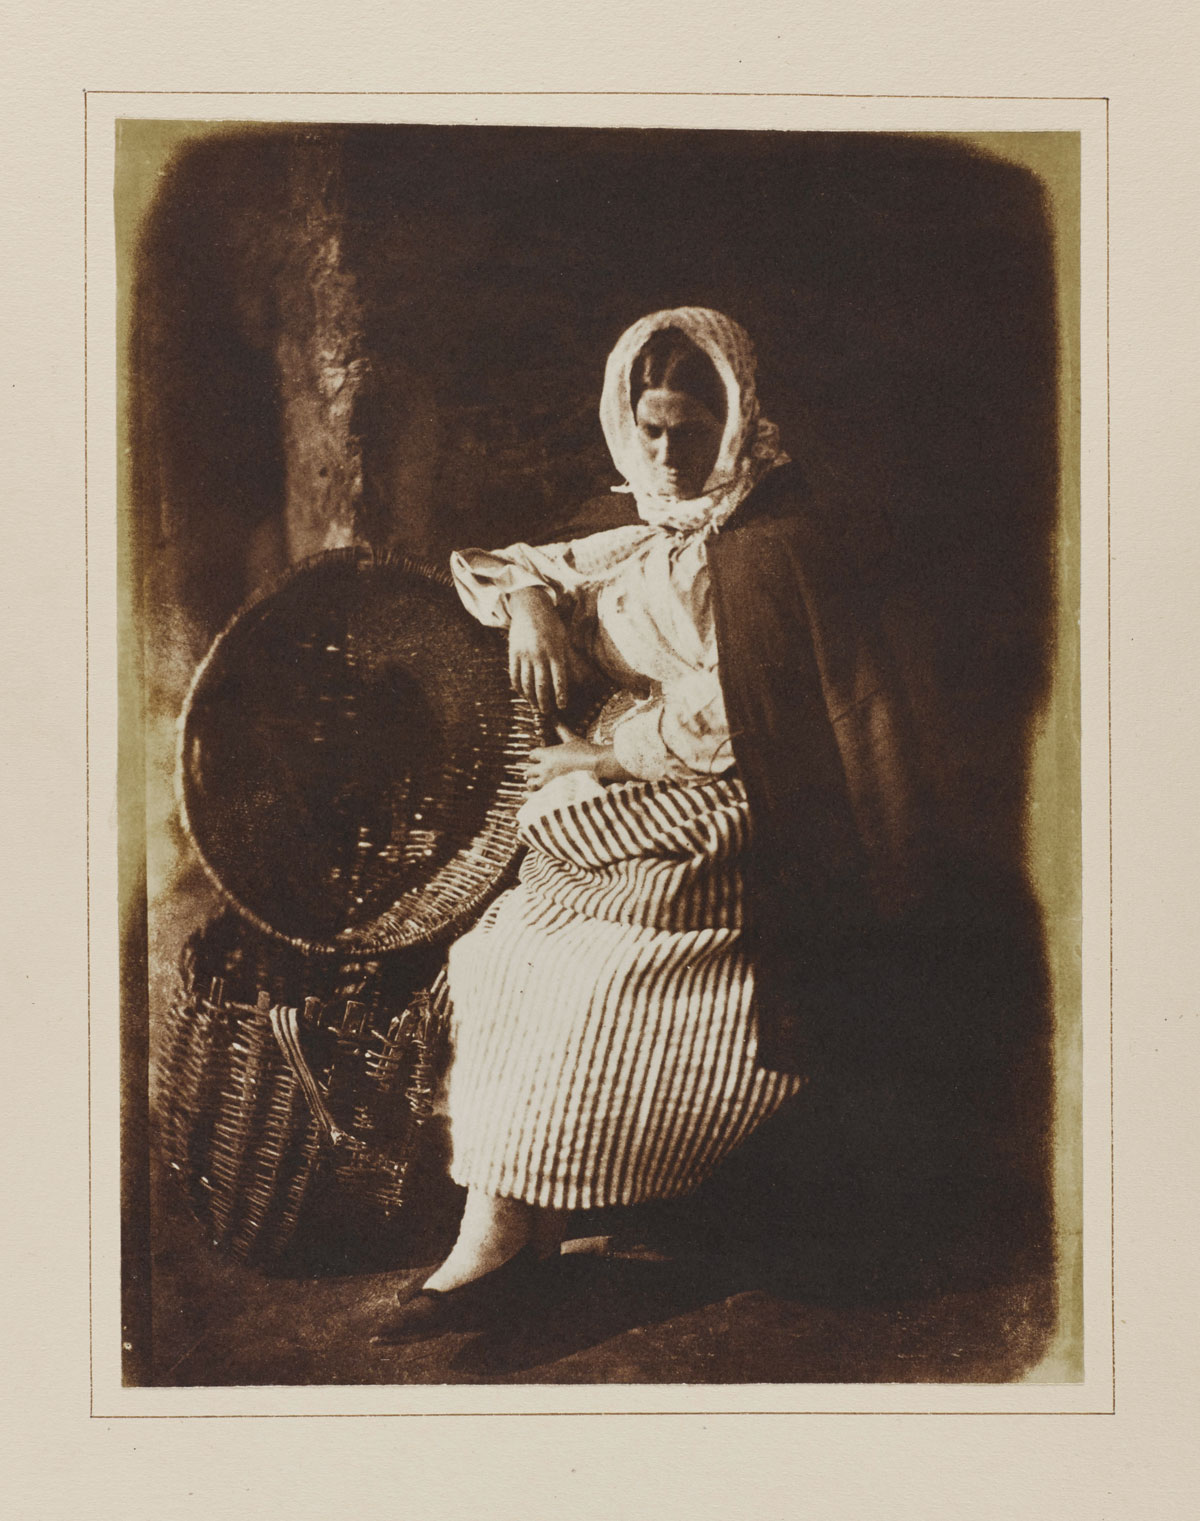 David Octavius Hill and Robert Adamson<br />Mrs Elizabeth (Johnstone) Hall, a Newhaven fishwife, famous for her beauty and self-confidence<br />1843-48<br />From an album presented by Hill to the Society of Antiquaries of Scotland in 1850<br />Salt print from a calotype negative,<br />© National Museums Scotland